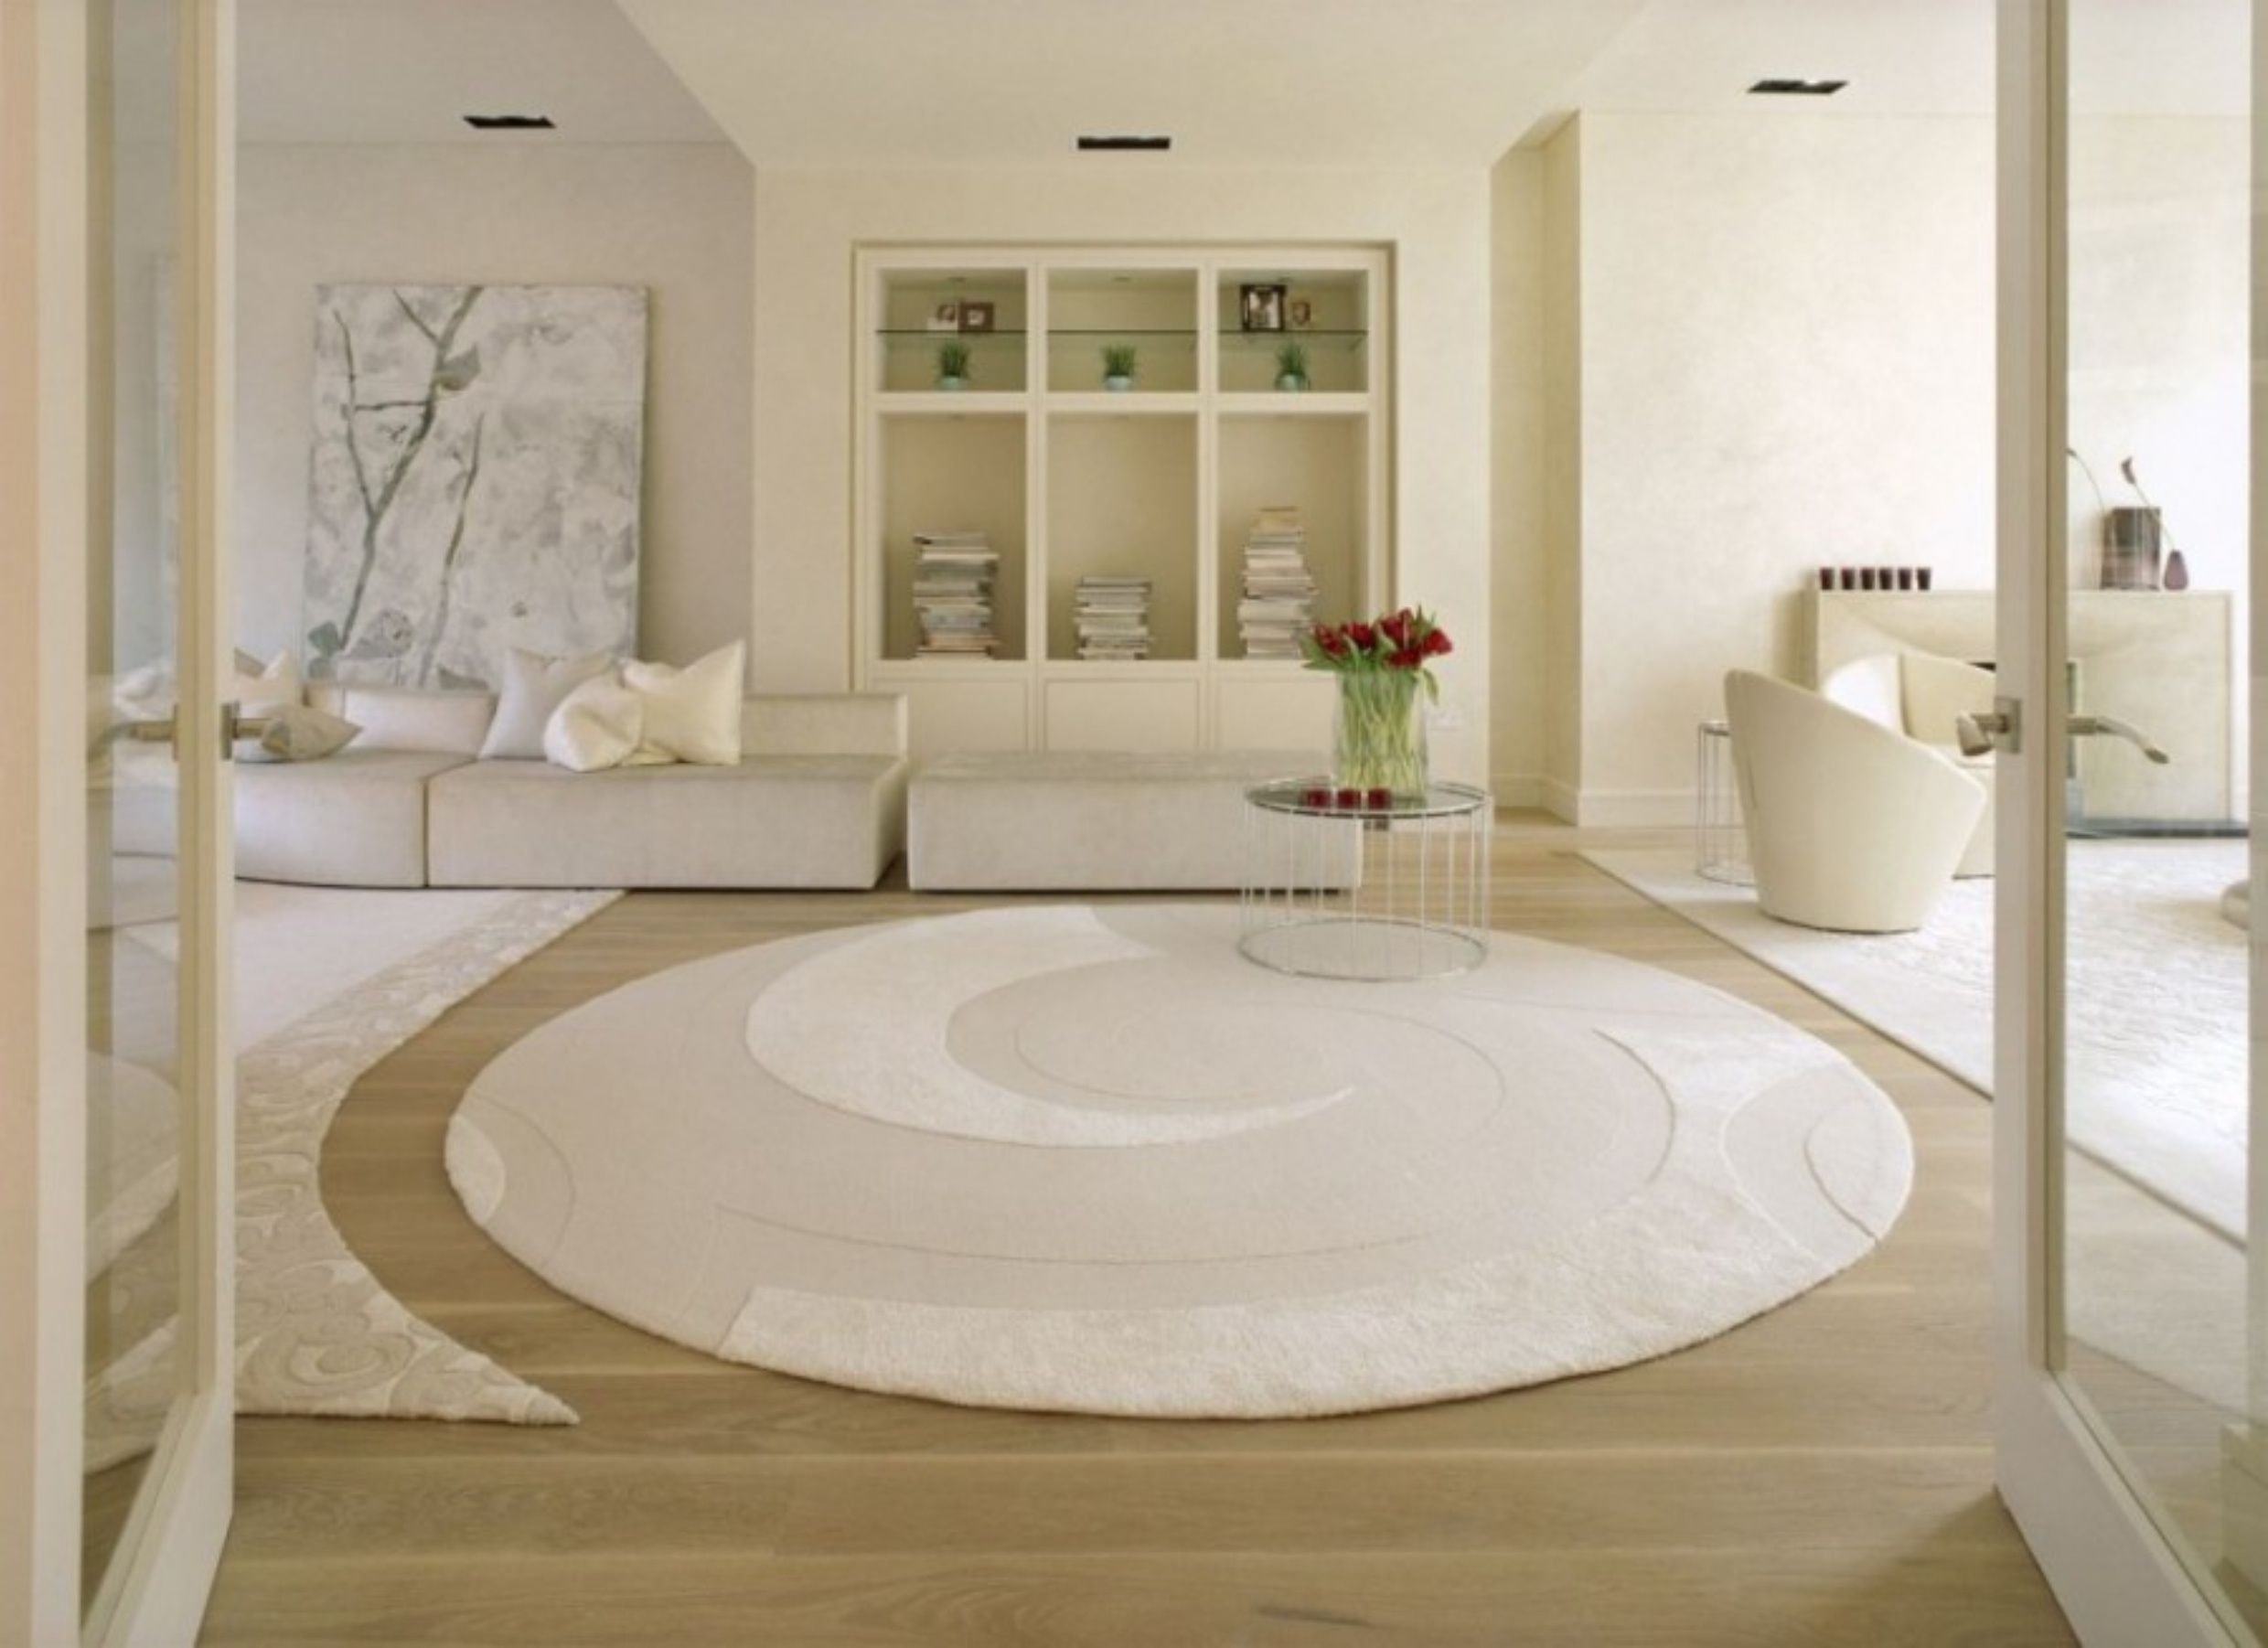 White Round Extra Large Bathroom Rug Large Bathroom Rugs - Large bathroom floor mats for bathroom decorating ideas